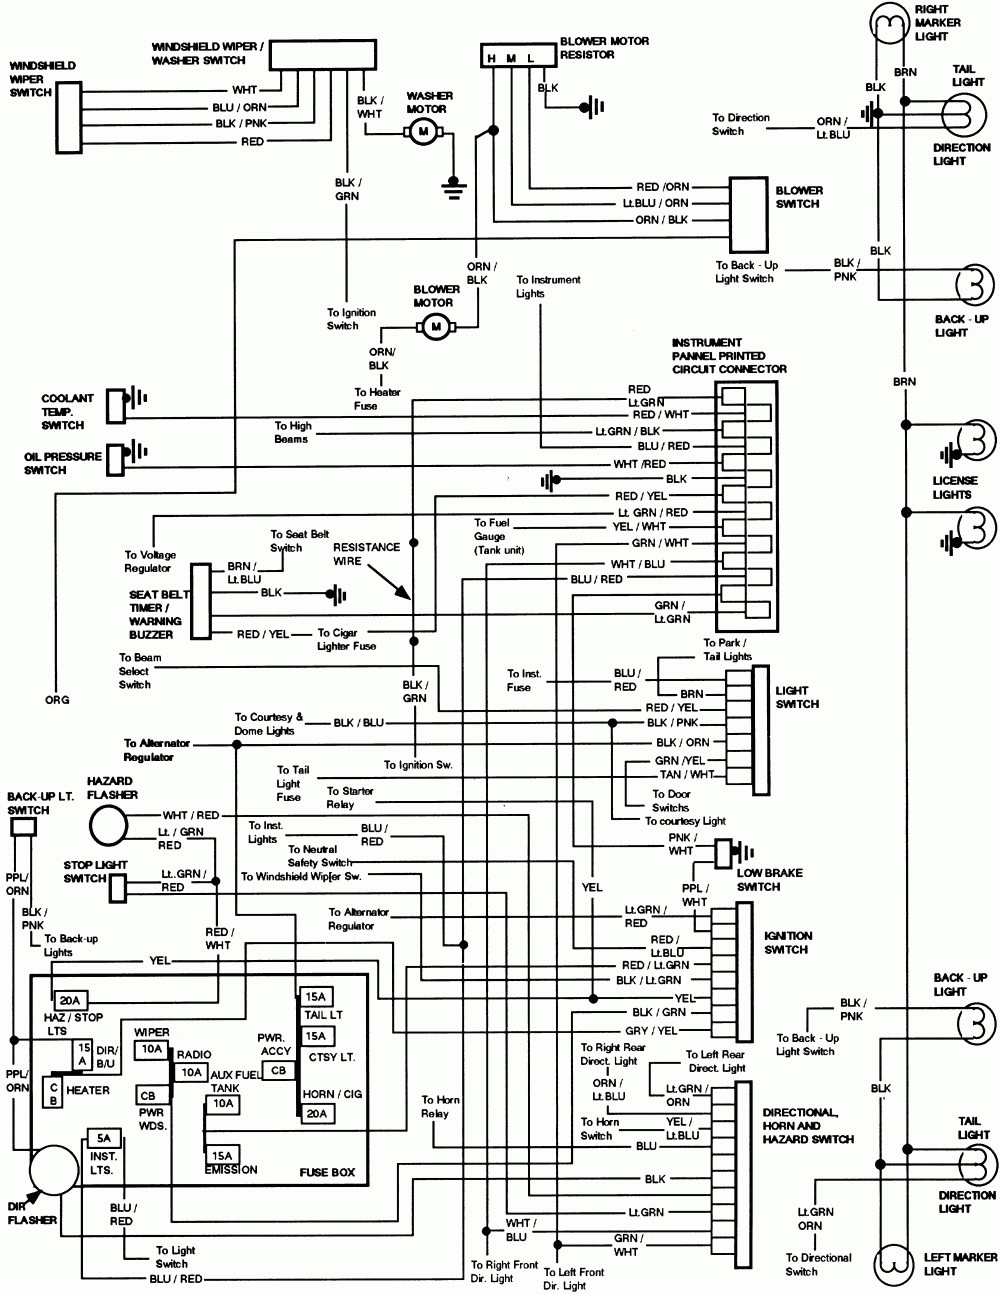 1986 ford f 150 ignition wiring diagram wiring diagram portal u2022 rh getcircuitdiagram today 1986 F150 EEC Pinouts Diagrams 1986 F350 Wiring Diagram